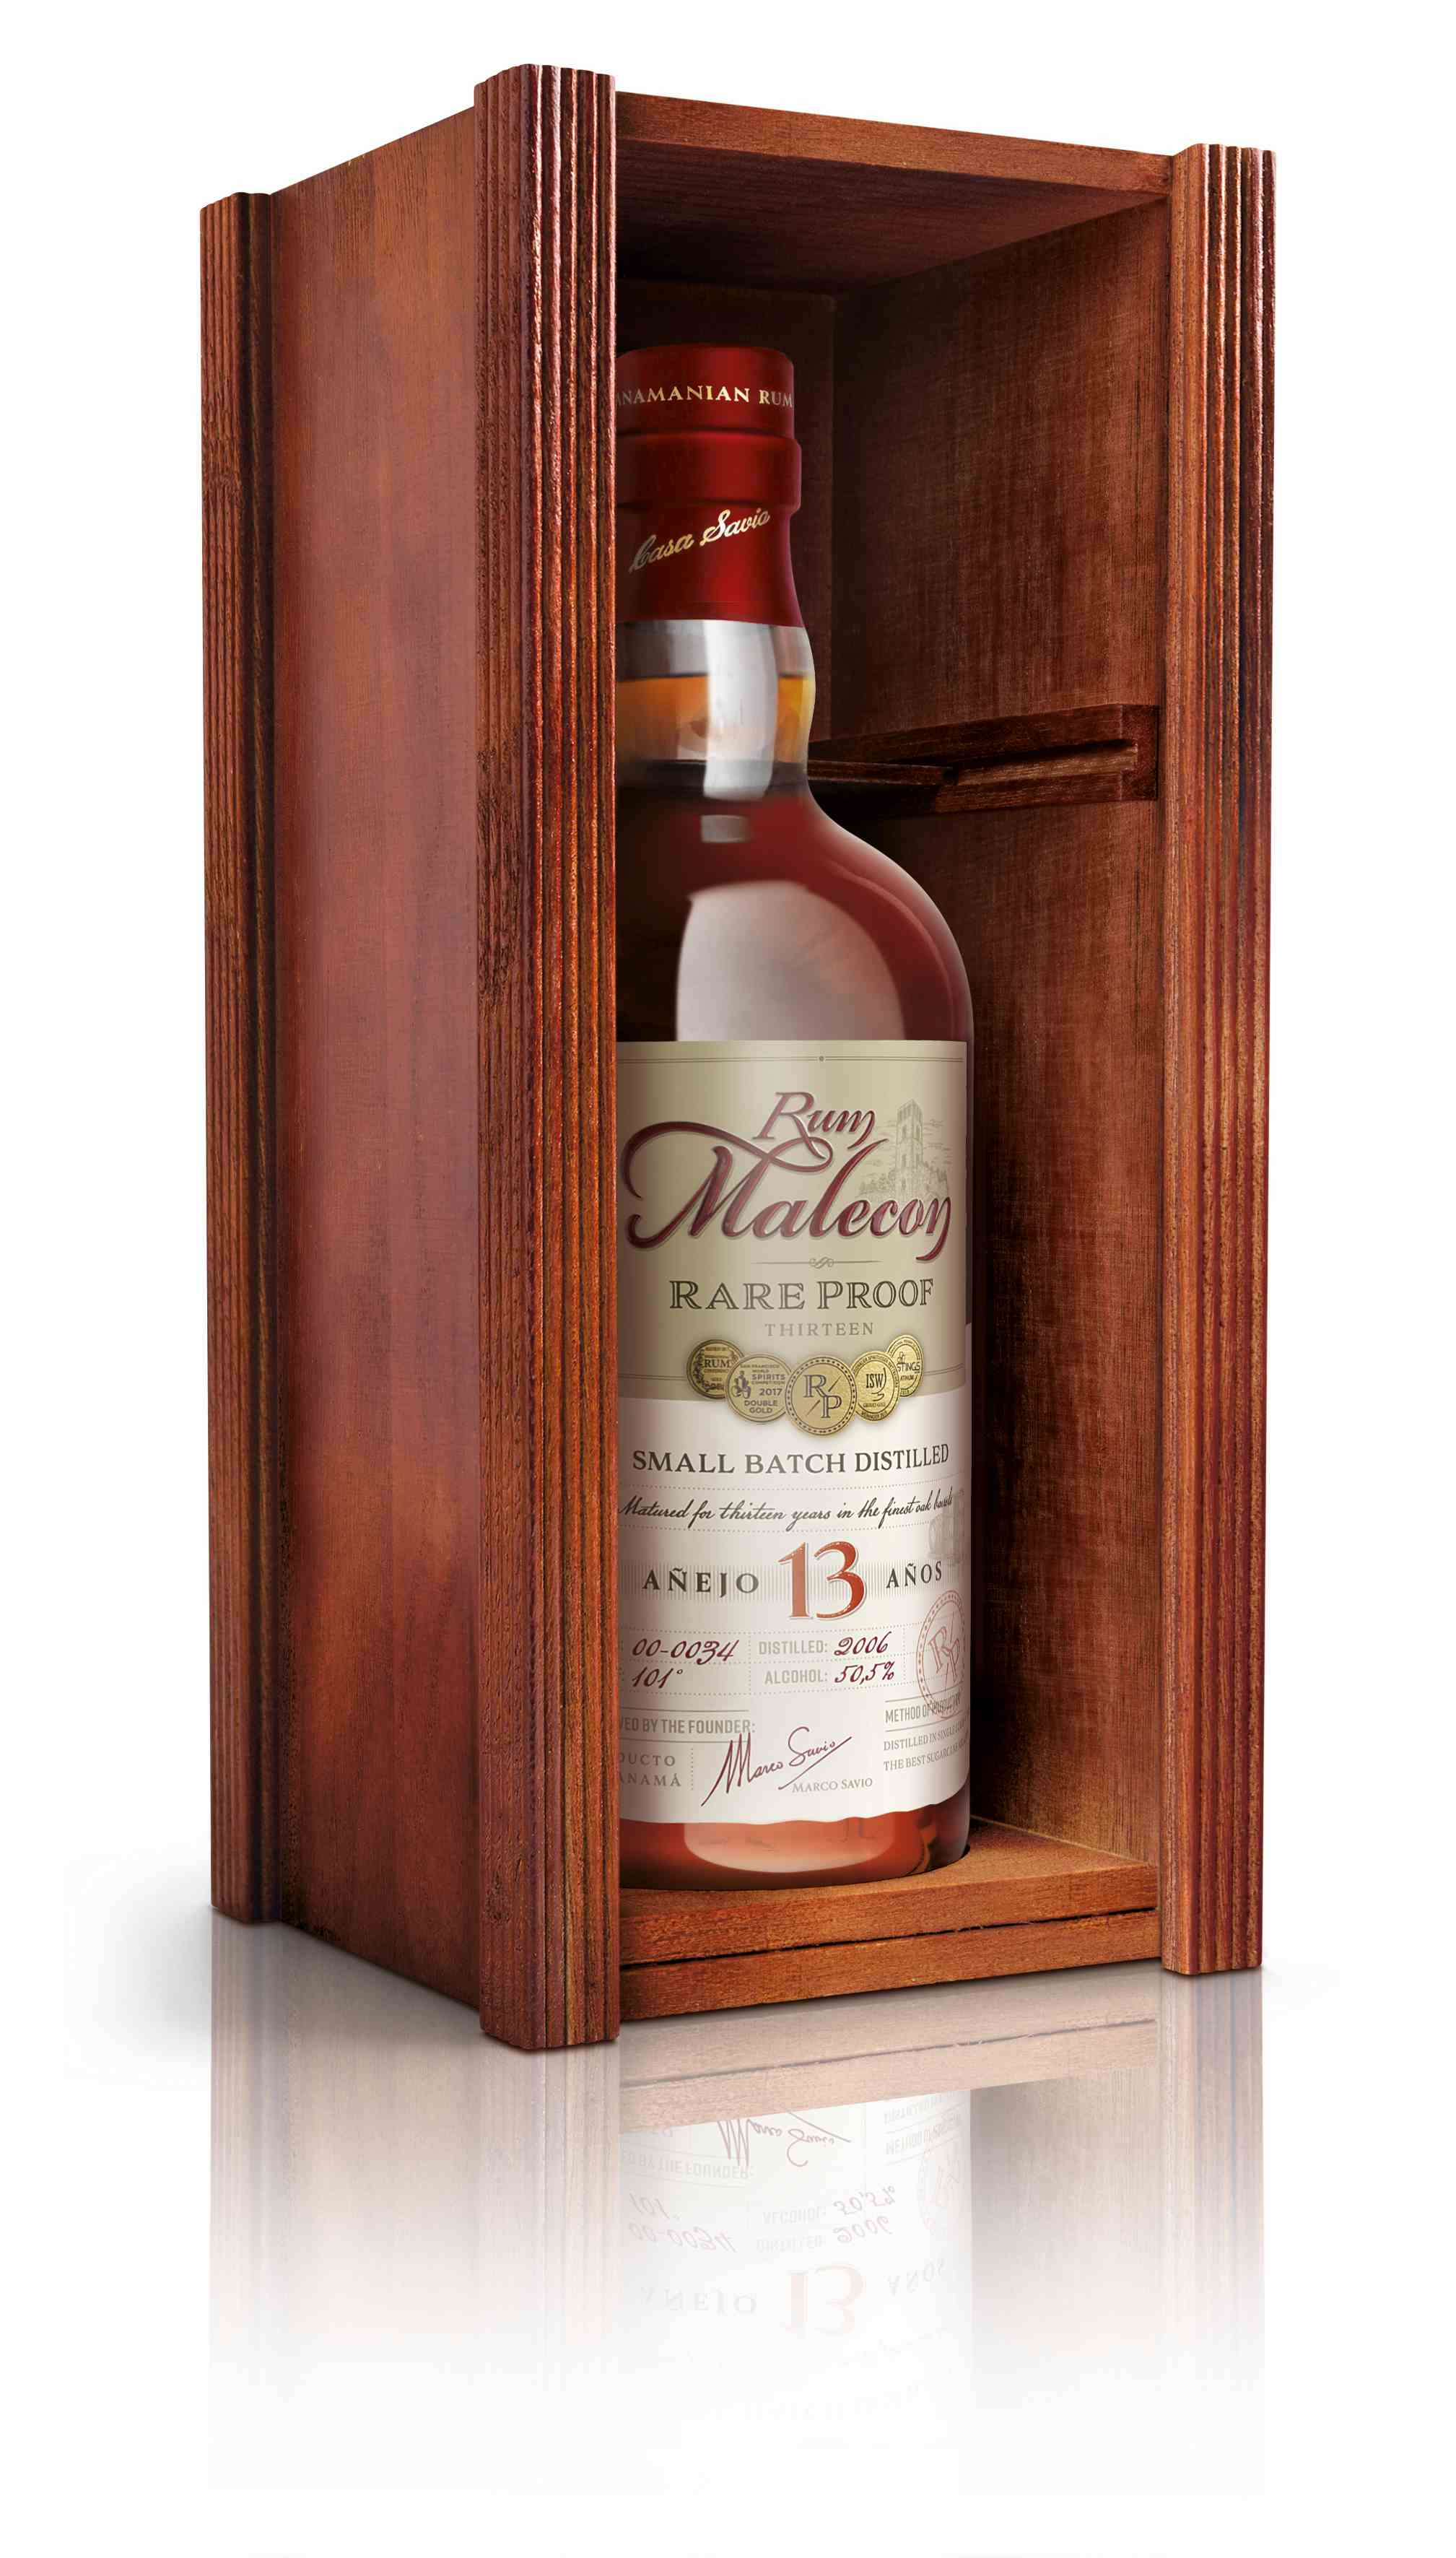 Malecon Rare Proof 13 Years Small Batch